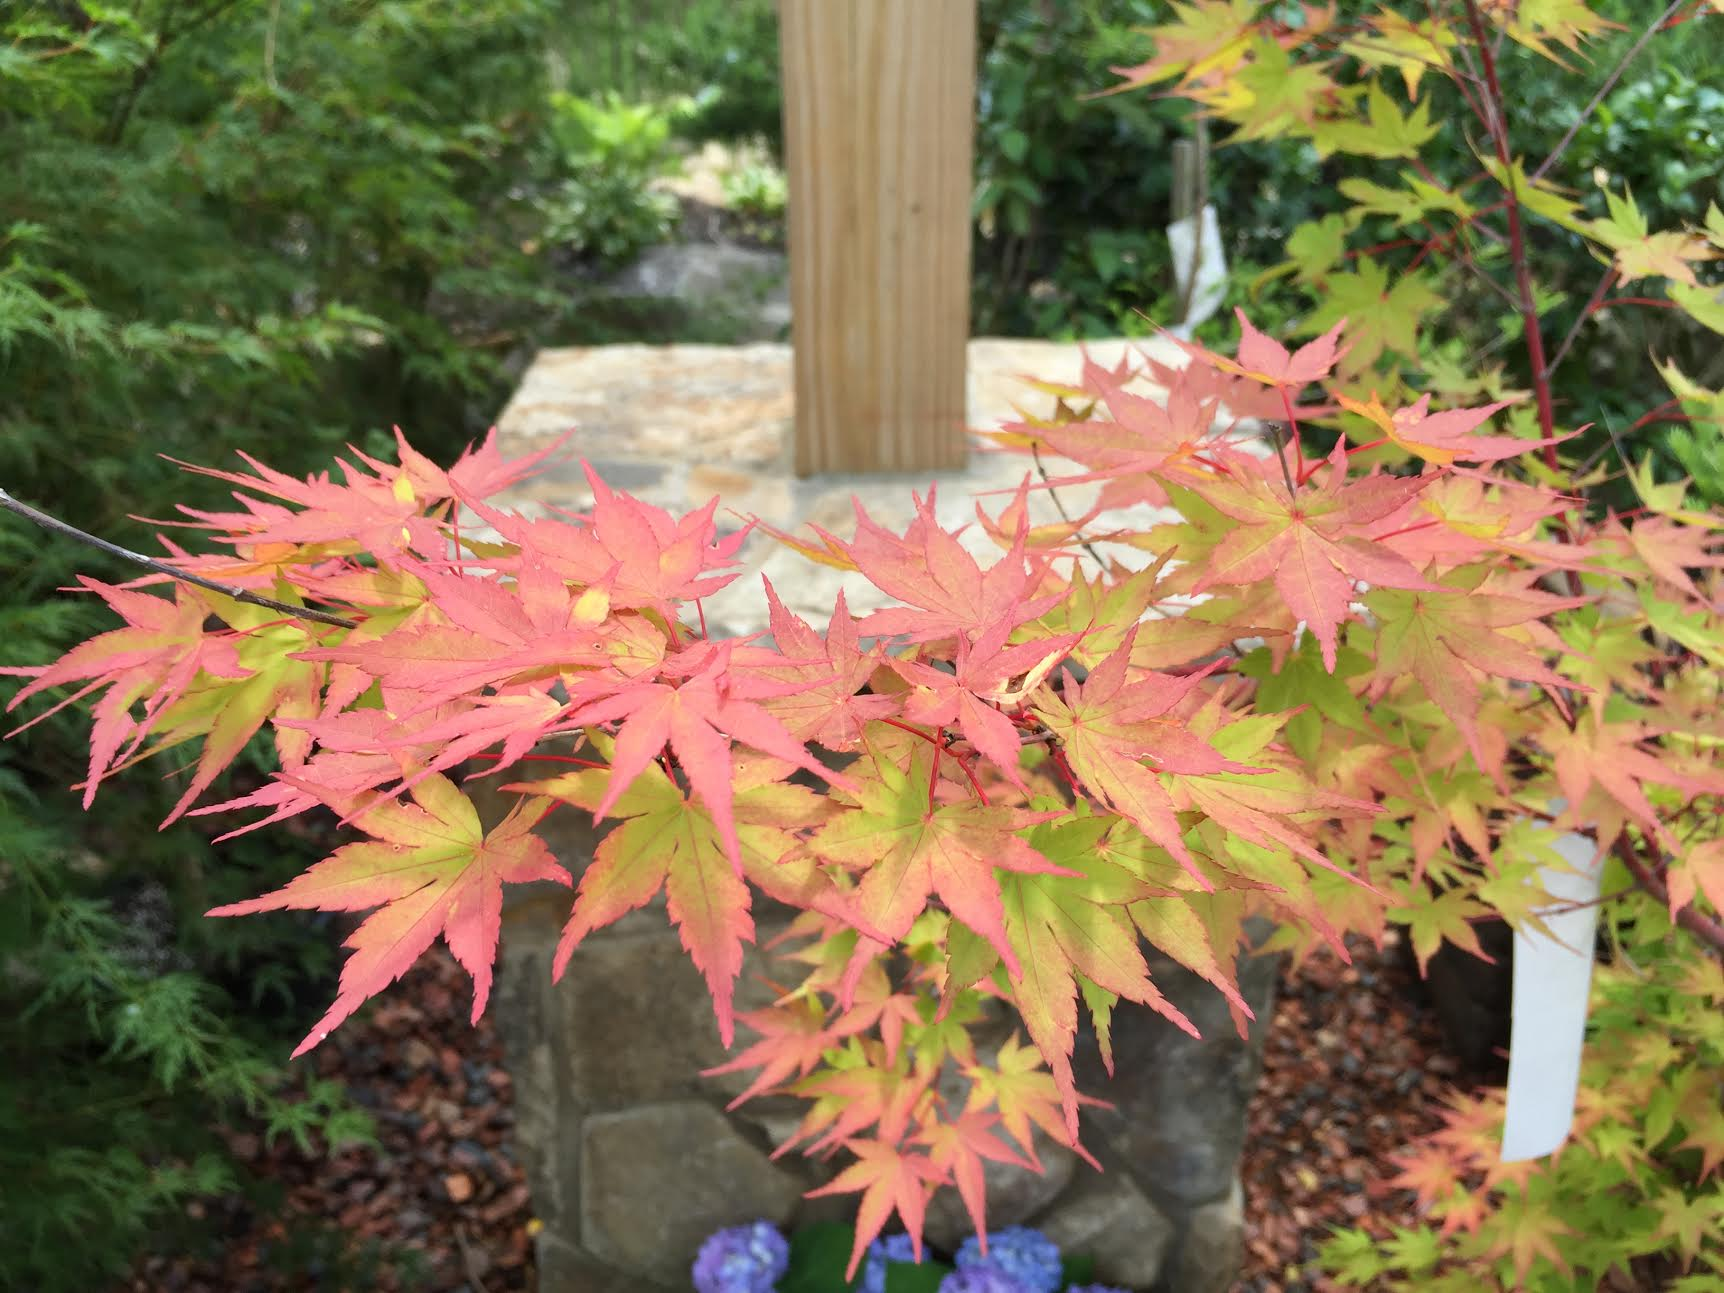 sango-kaku-coral-bark-maple-japanese-maple-sango-kaku-sugar-maple-tree-red-bark-maple-tree-red-maple-bark-red-bark-japanese-maple-acer-palmatum-sango-kaku-sango-kaku-japanese-maple-pics-j